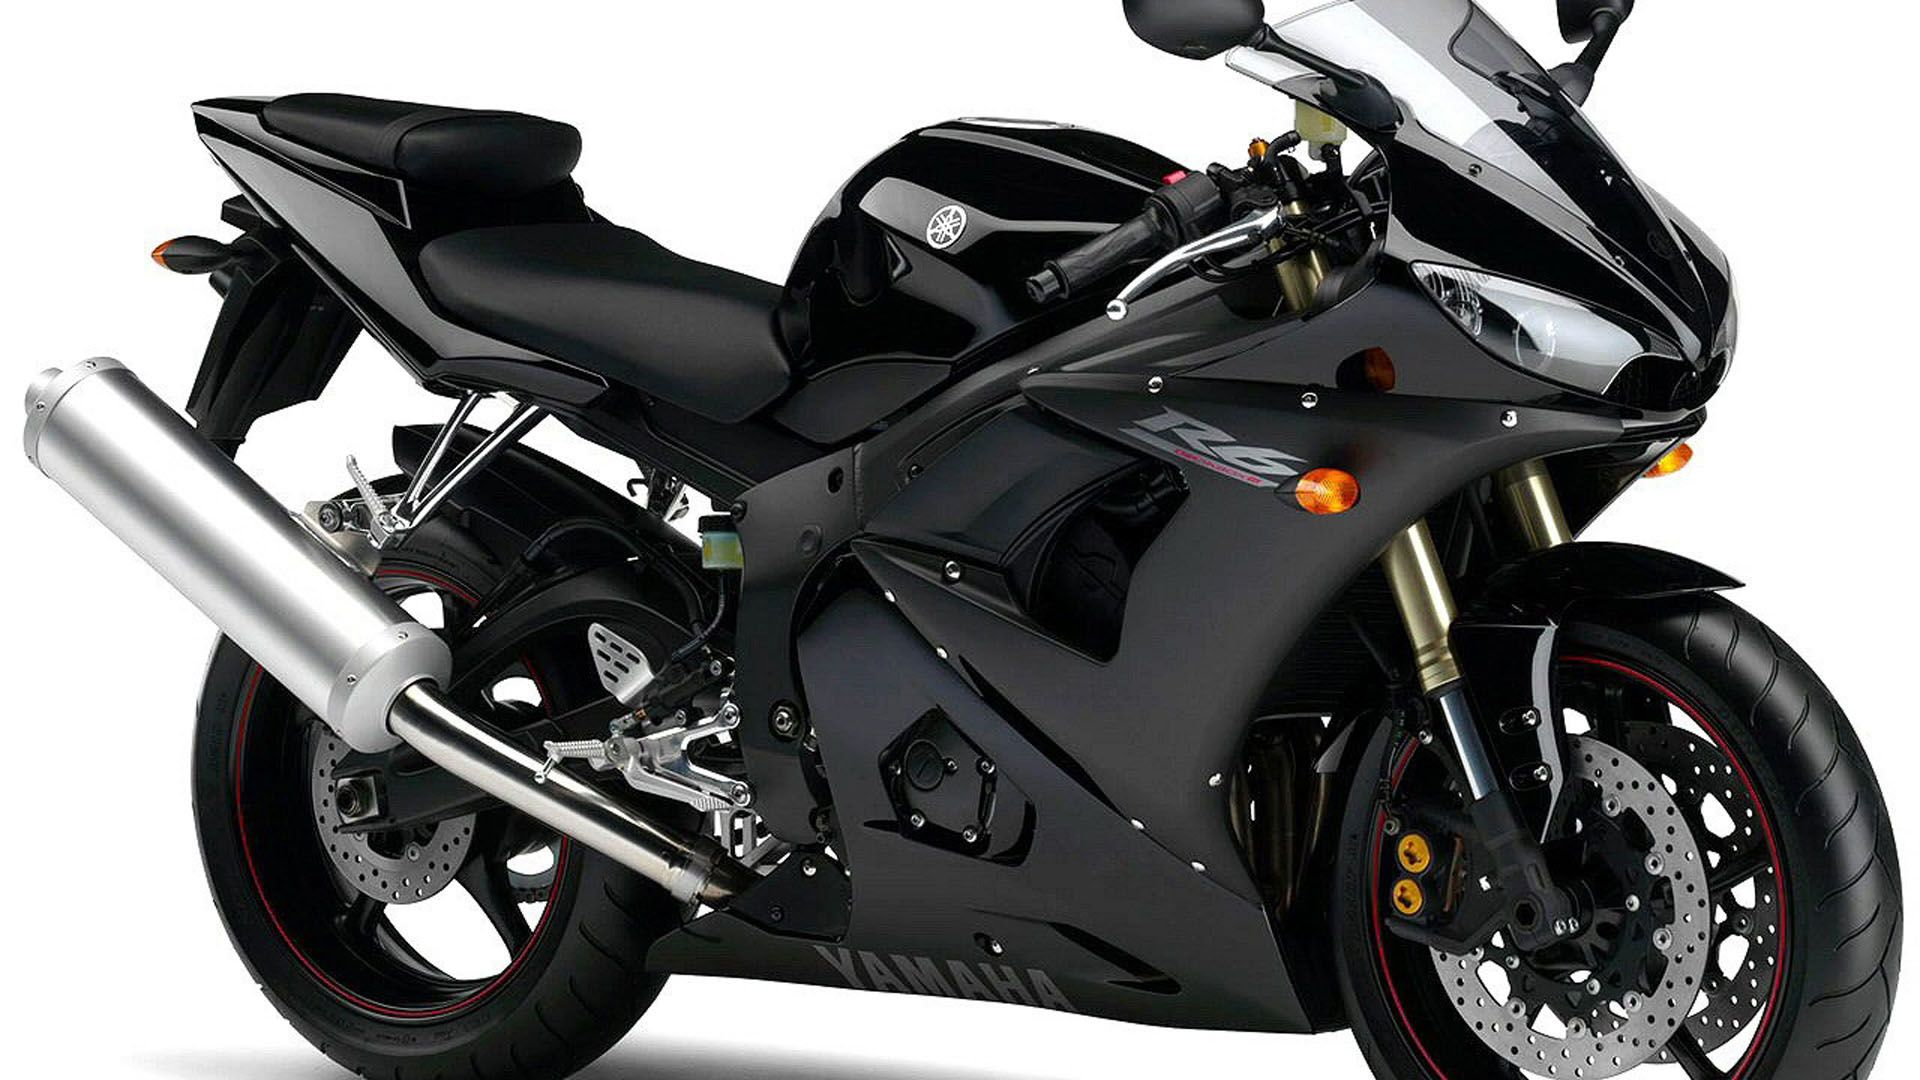 Yamaha R6 Sports Bike 1080p Hd Wallpaper Sport Bikes Yamaha